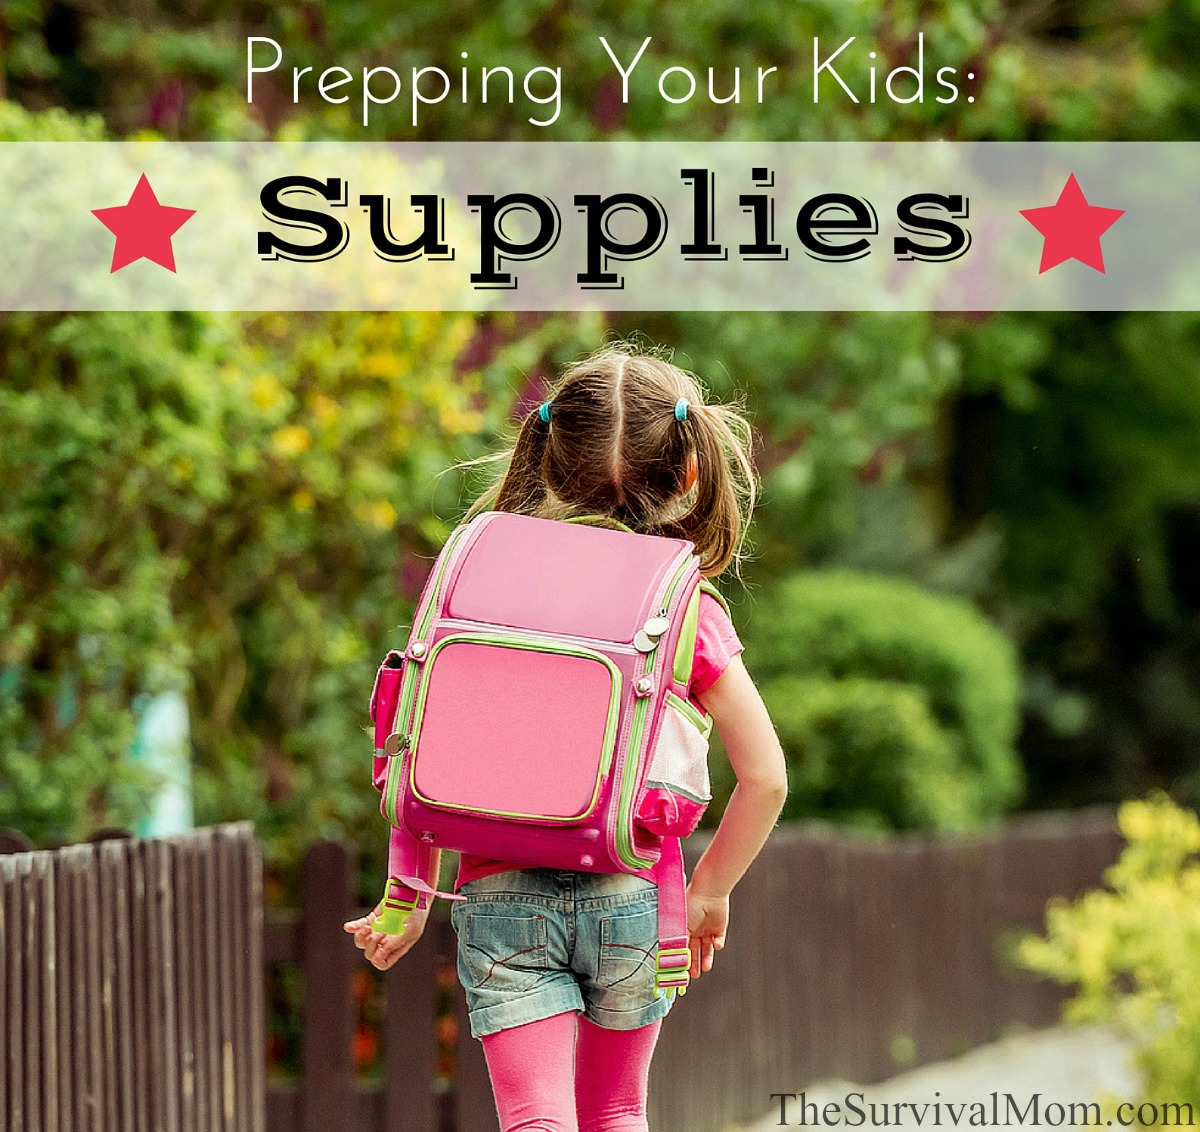 Prepping Your Kids for emergencies